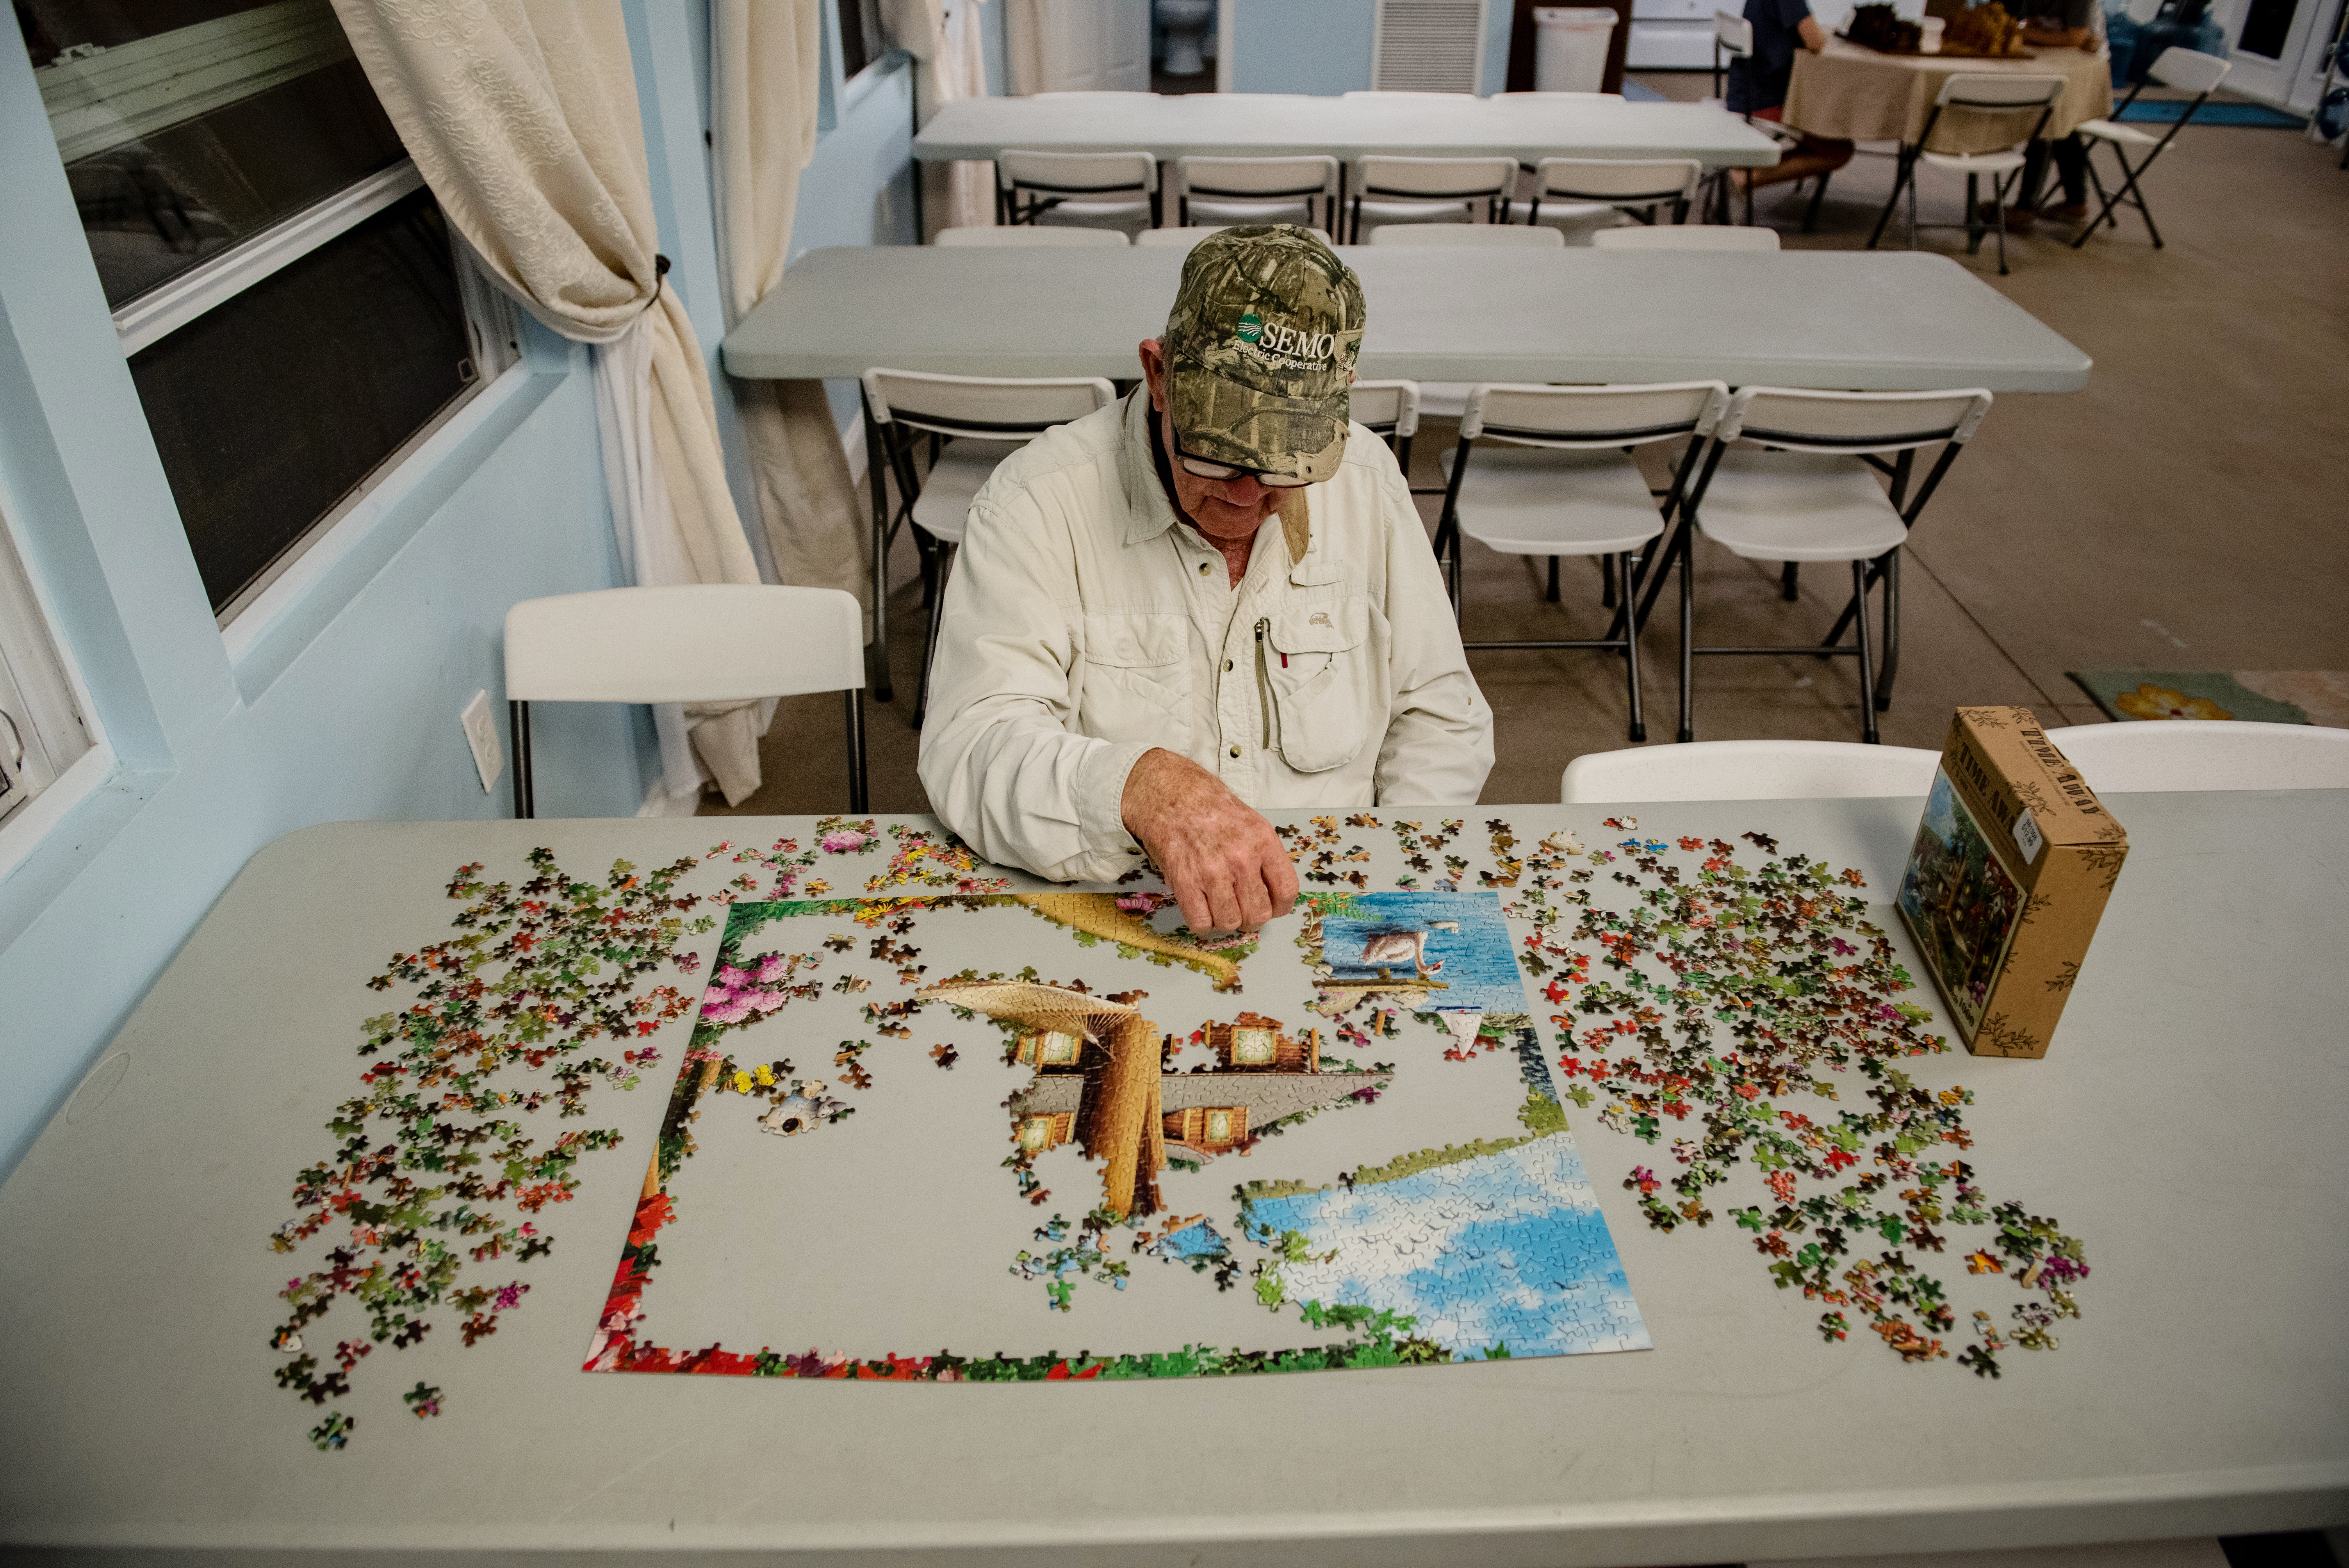 One of our guests putting together a puzzle at the recreational hall.